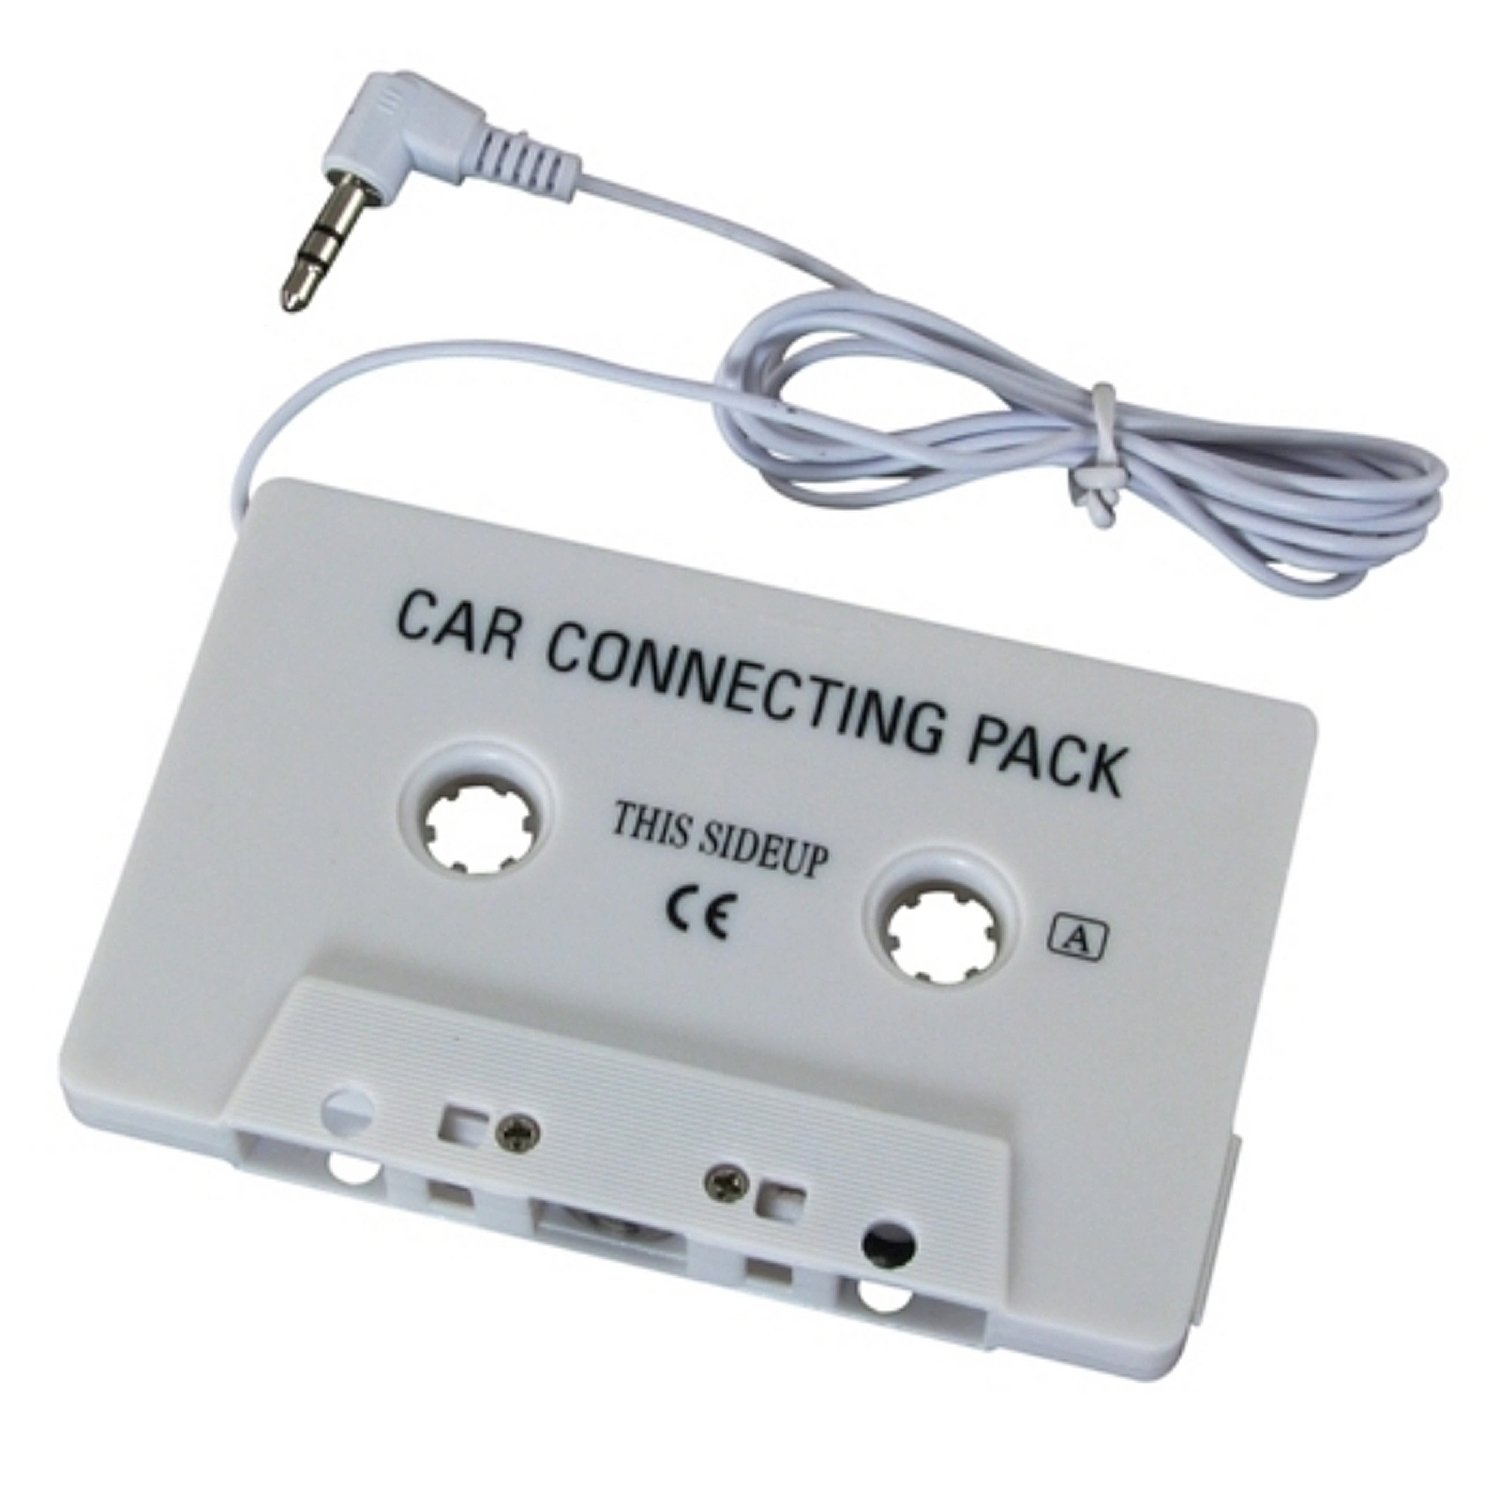 Car Audio Tape Cassette Adapter for MP3 Players car cassette tape adapter transmitters for mp3 cd dvd player white 3 5mm plug